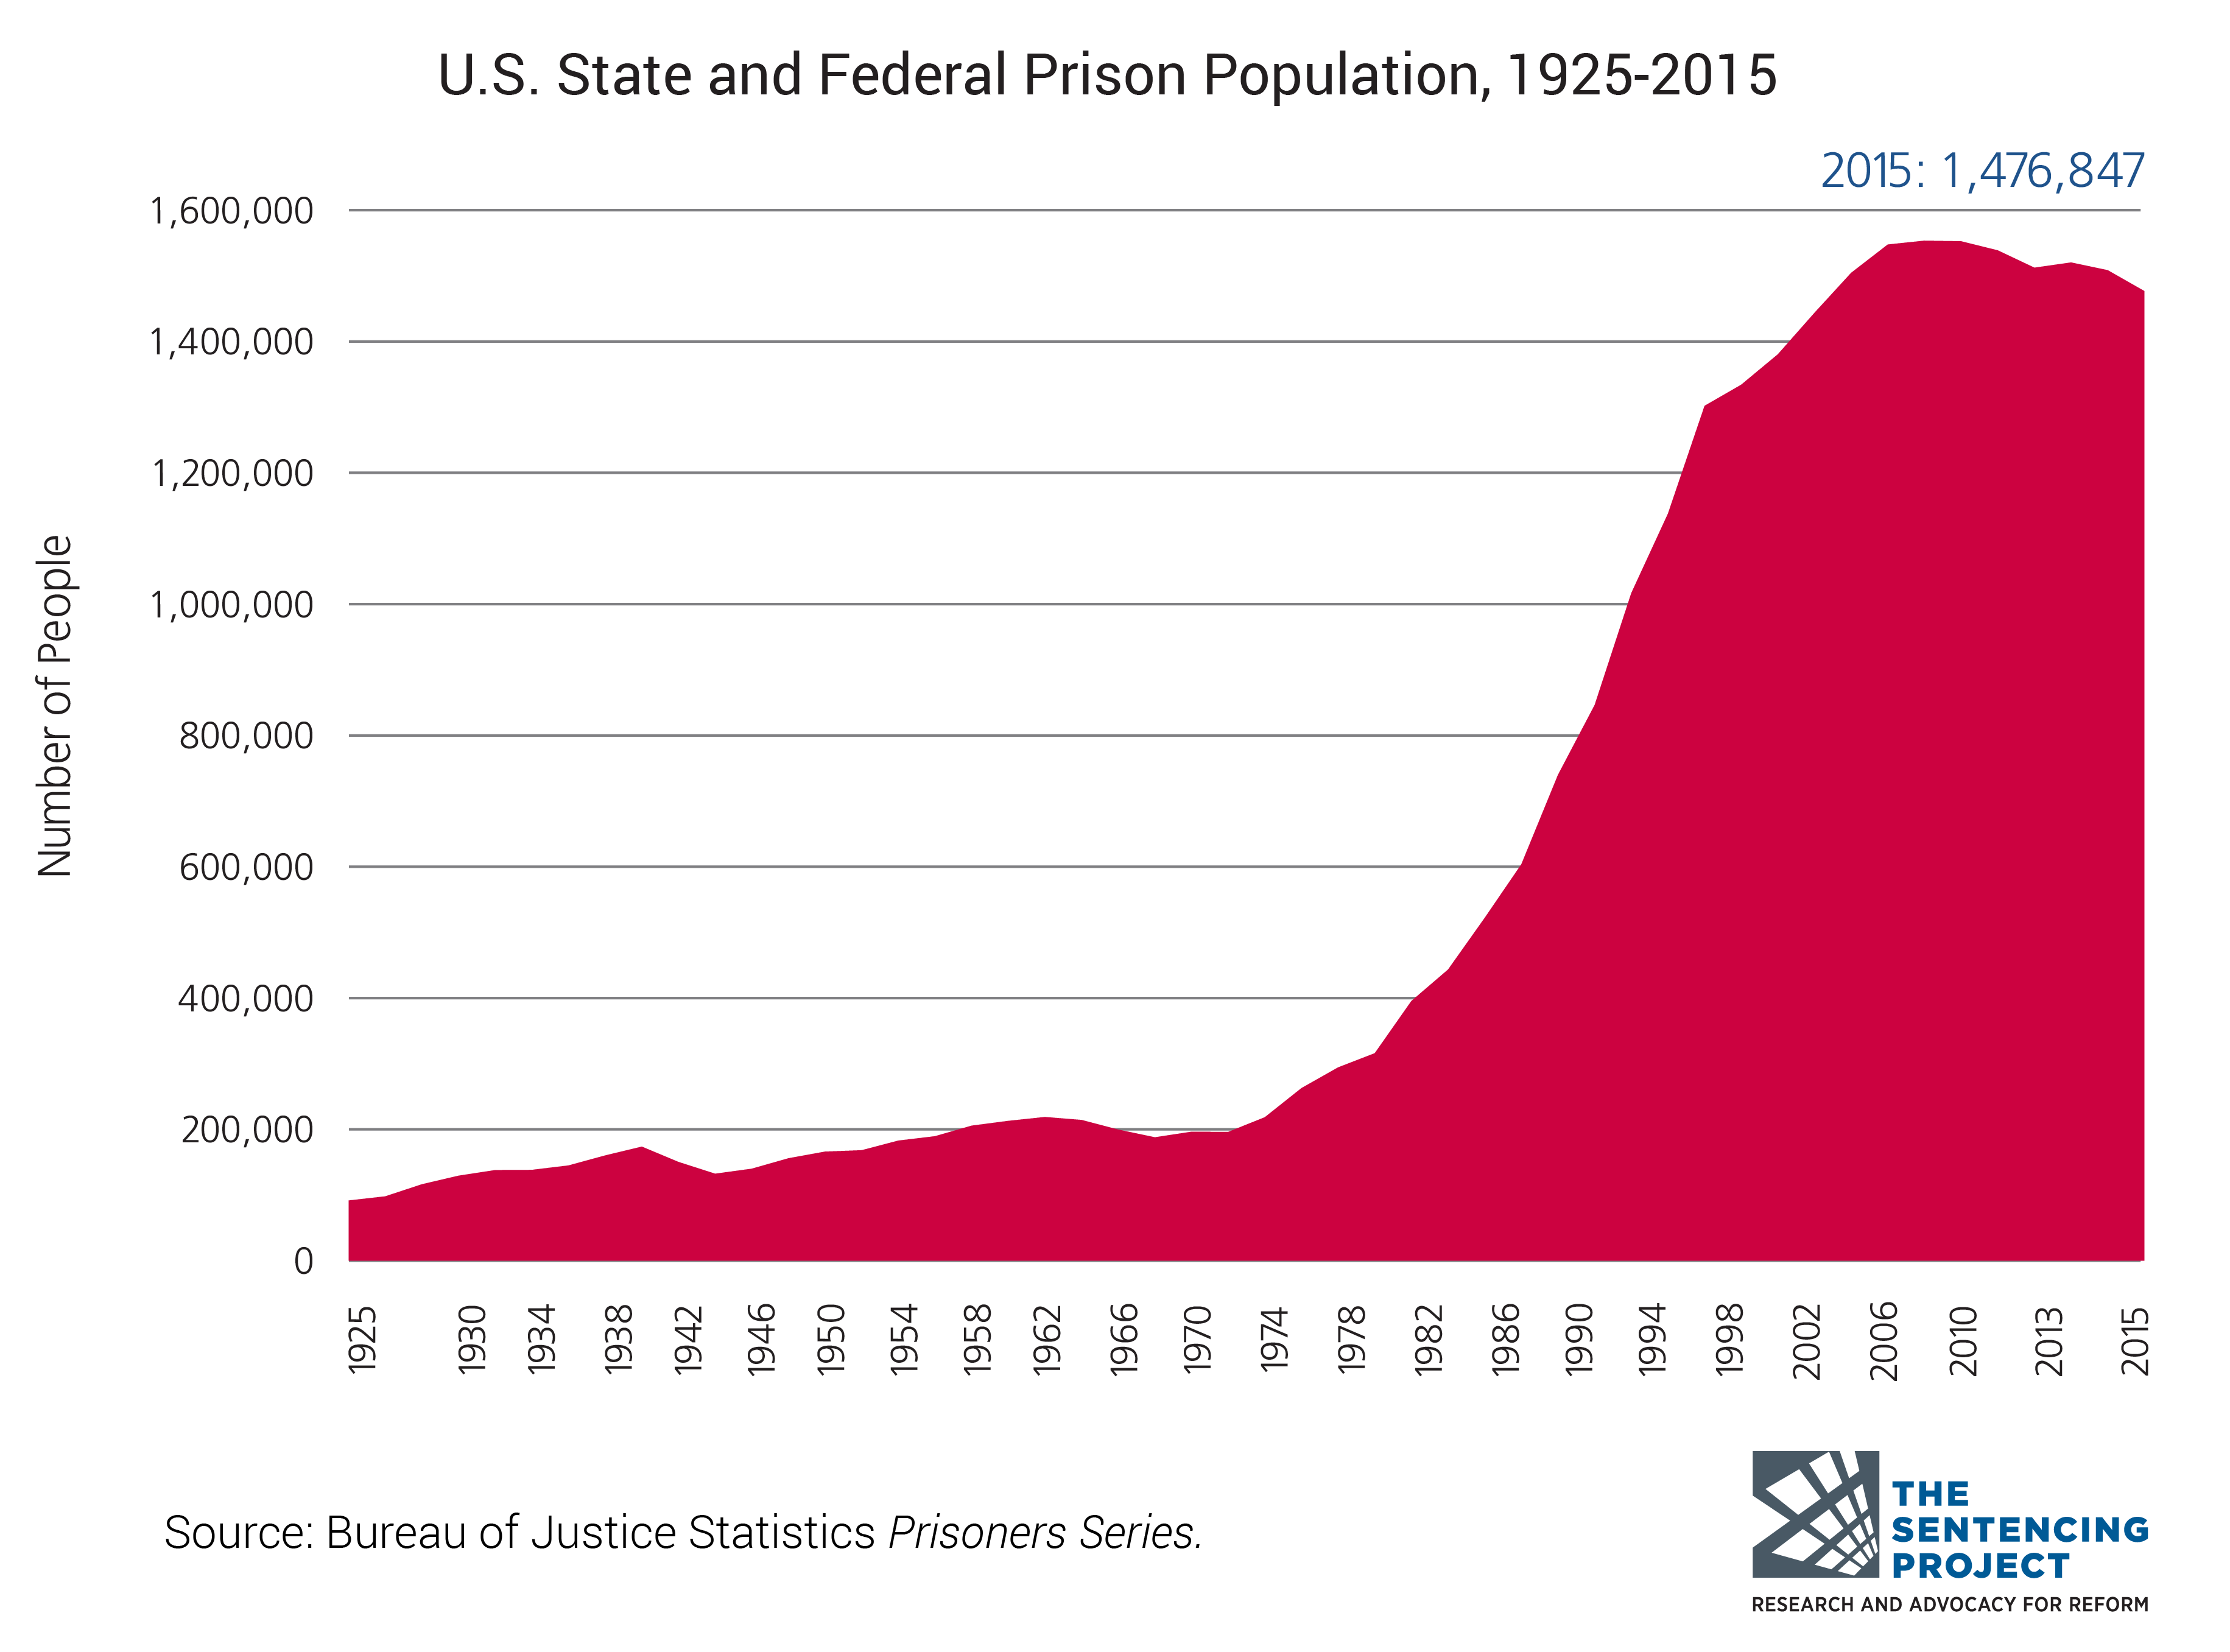 Rise in incarceration rates.